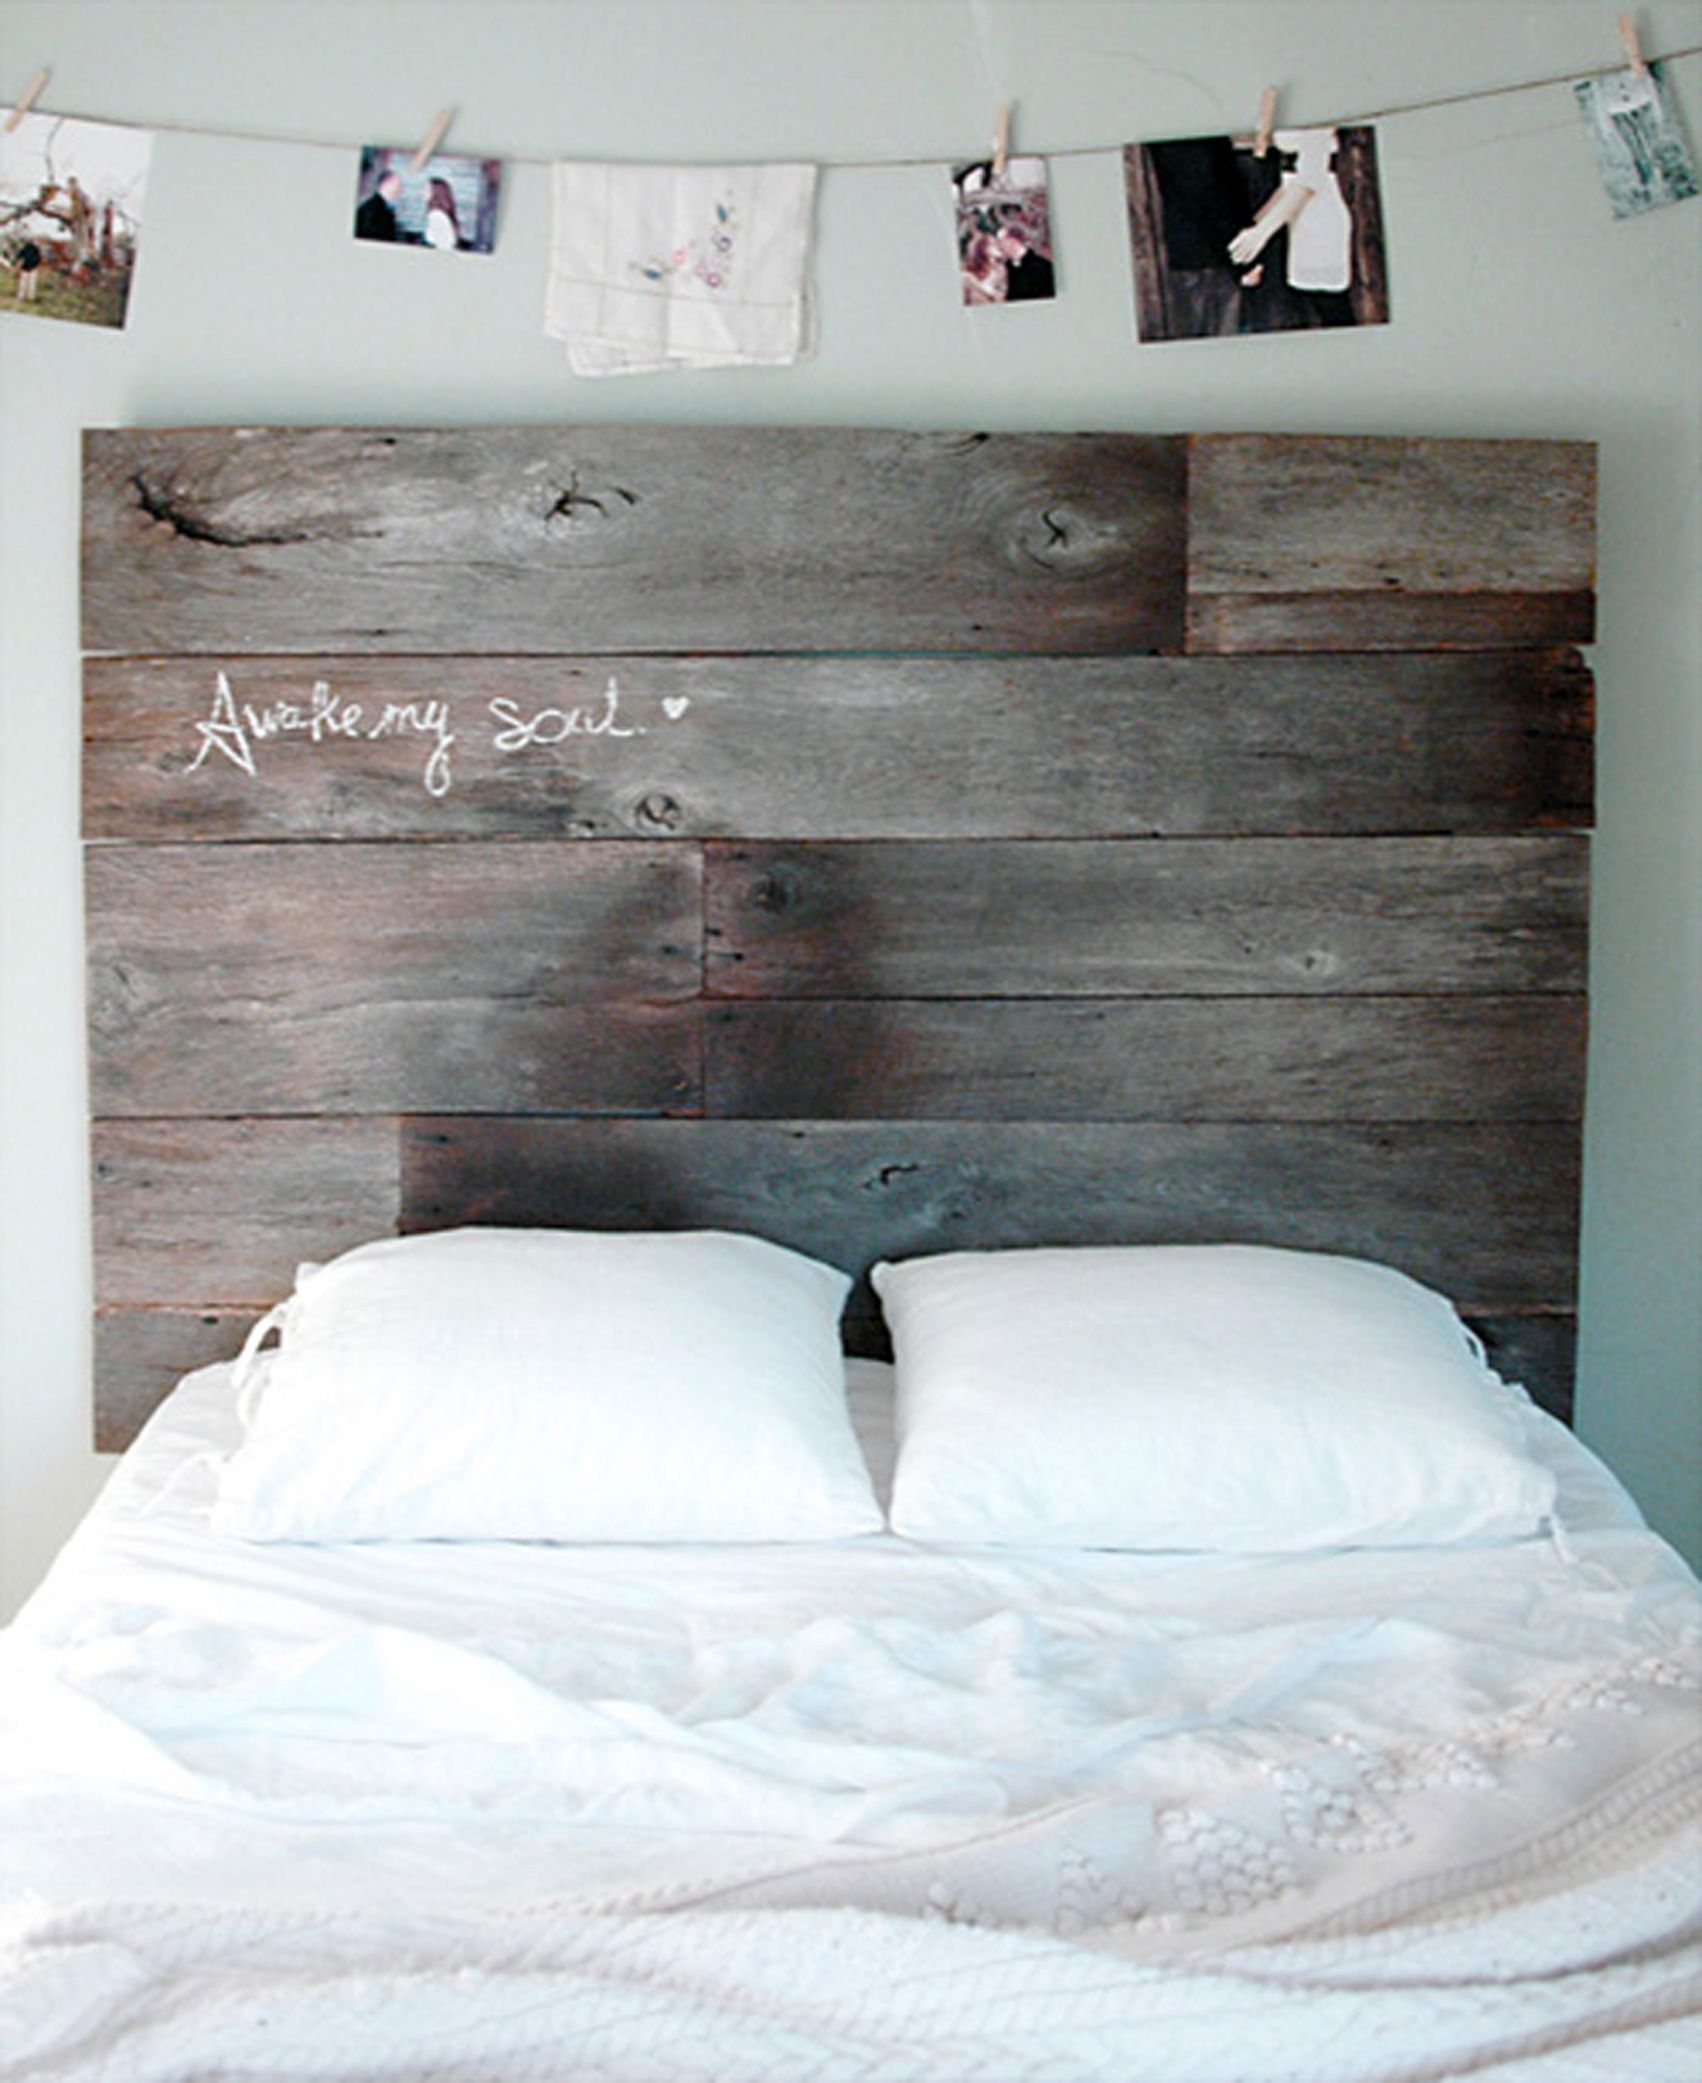 Cool headboard do it yourself barnwoodheadboard1 idea photo cool diy salvaged barn wood headboard love this idea even the photos above you can add new messages on the headboard and can change the pics around solutioingenieria Images